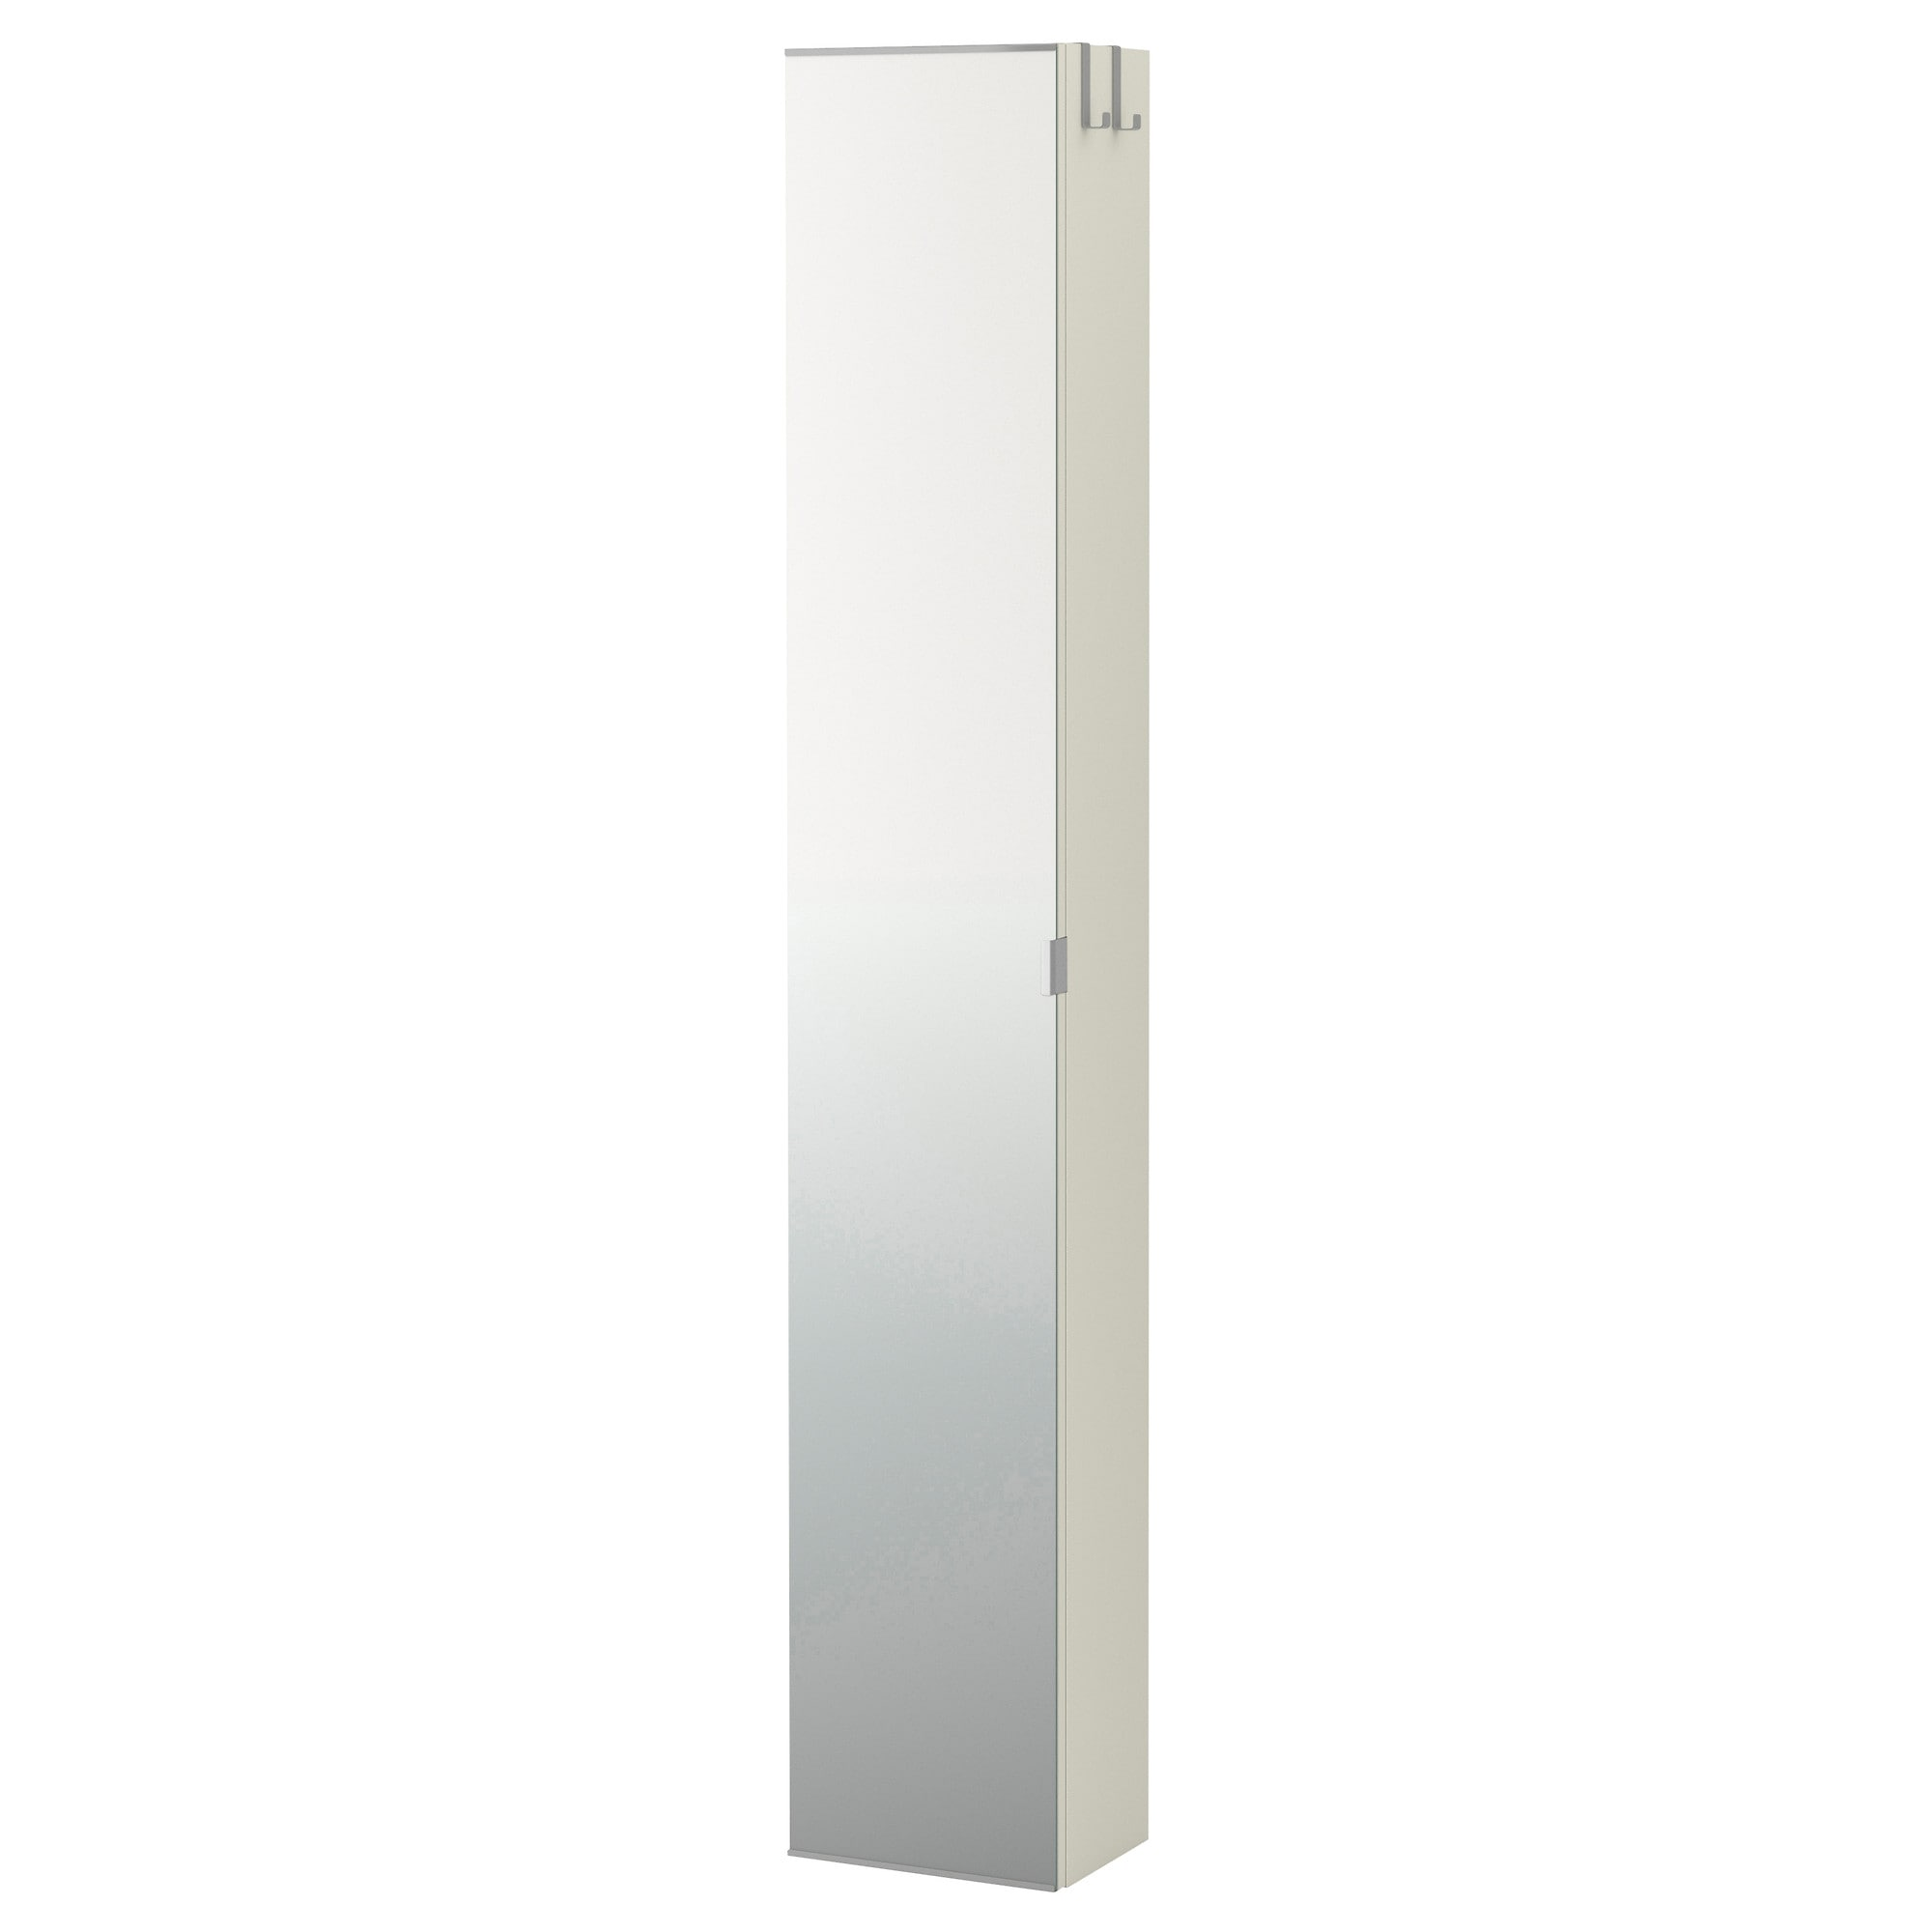 LILLNGEN High Cabinet With Mirror Door